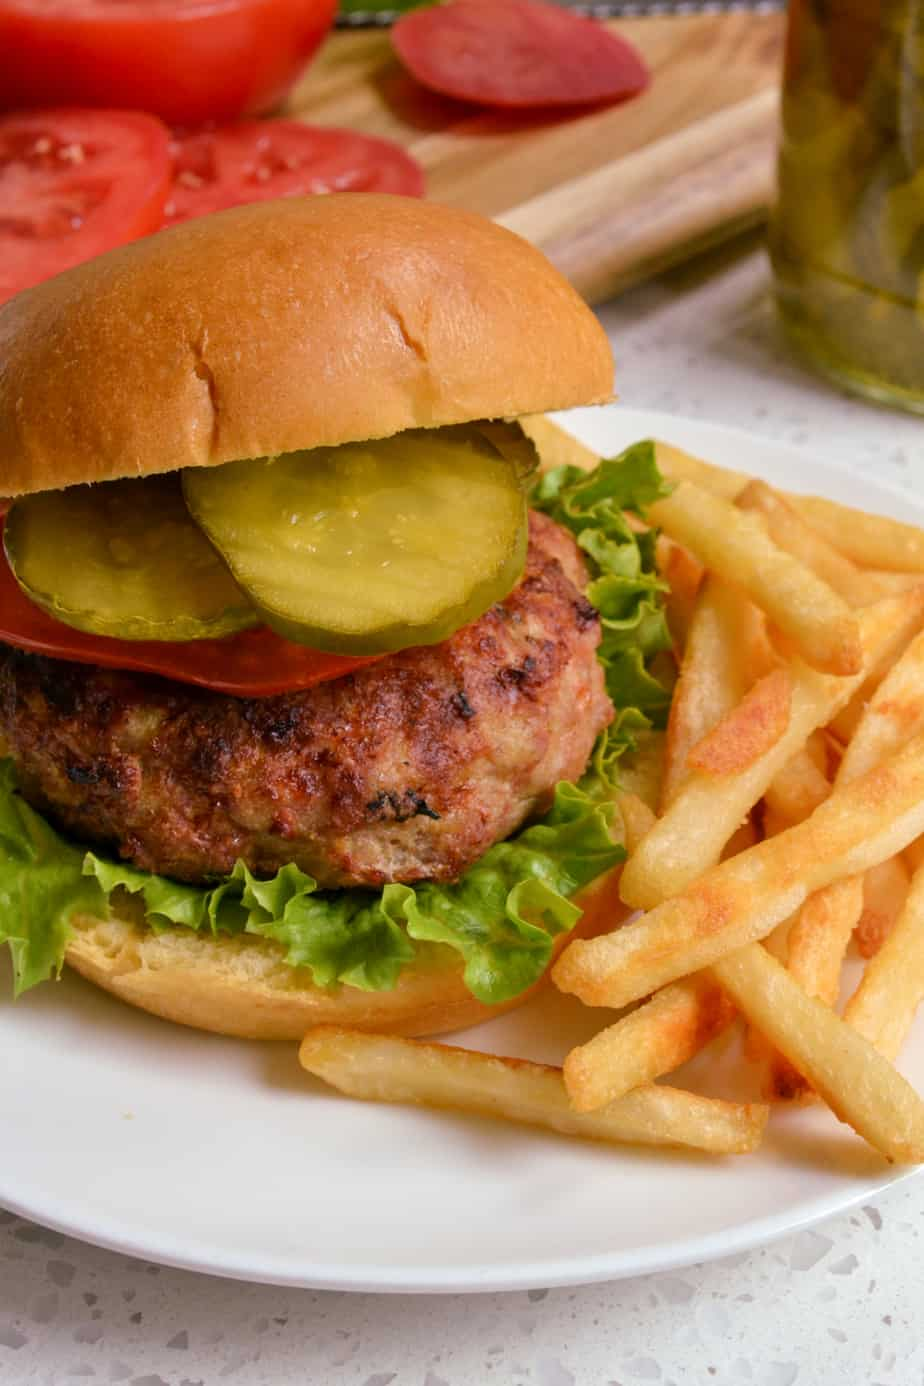 Turkey burger with lettuce, tomato, and pickles.